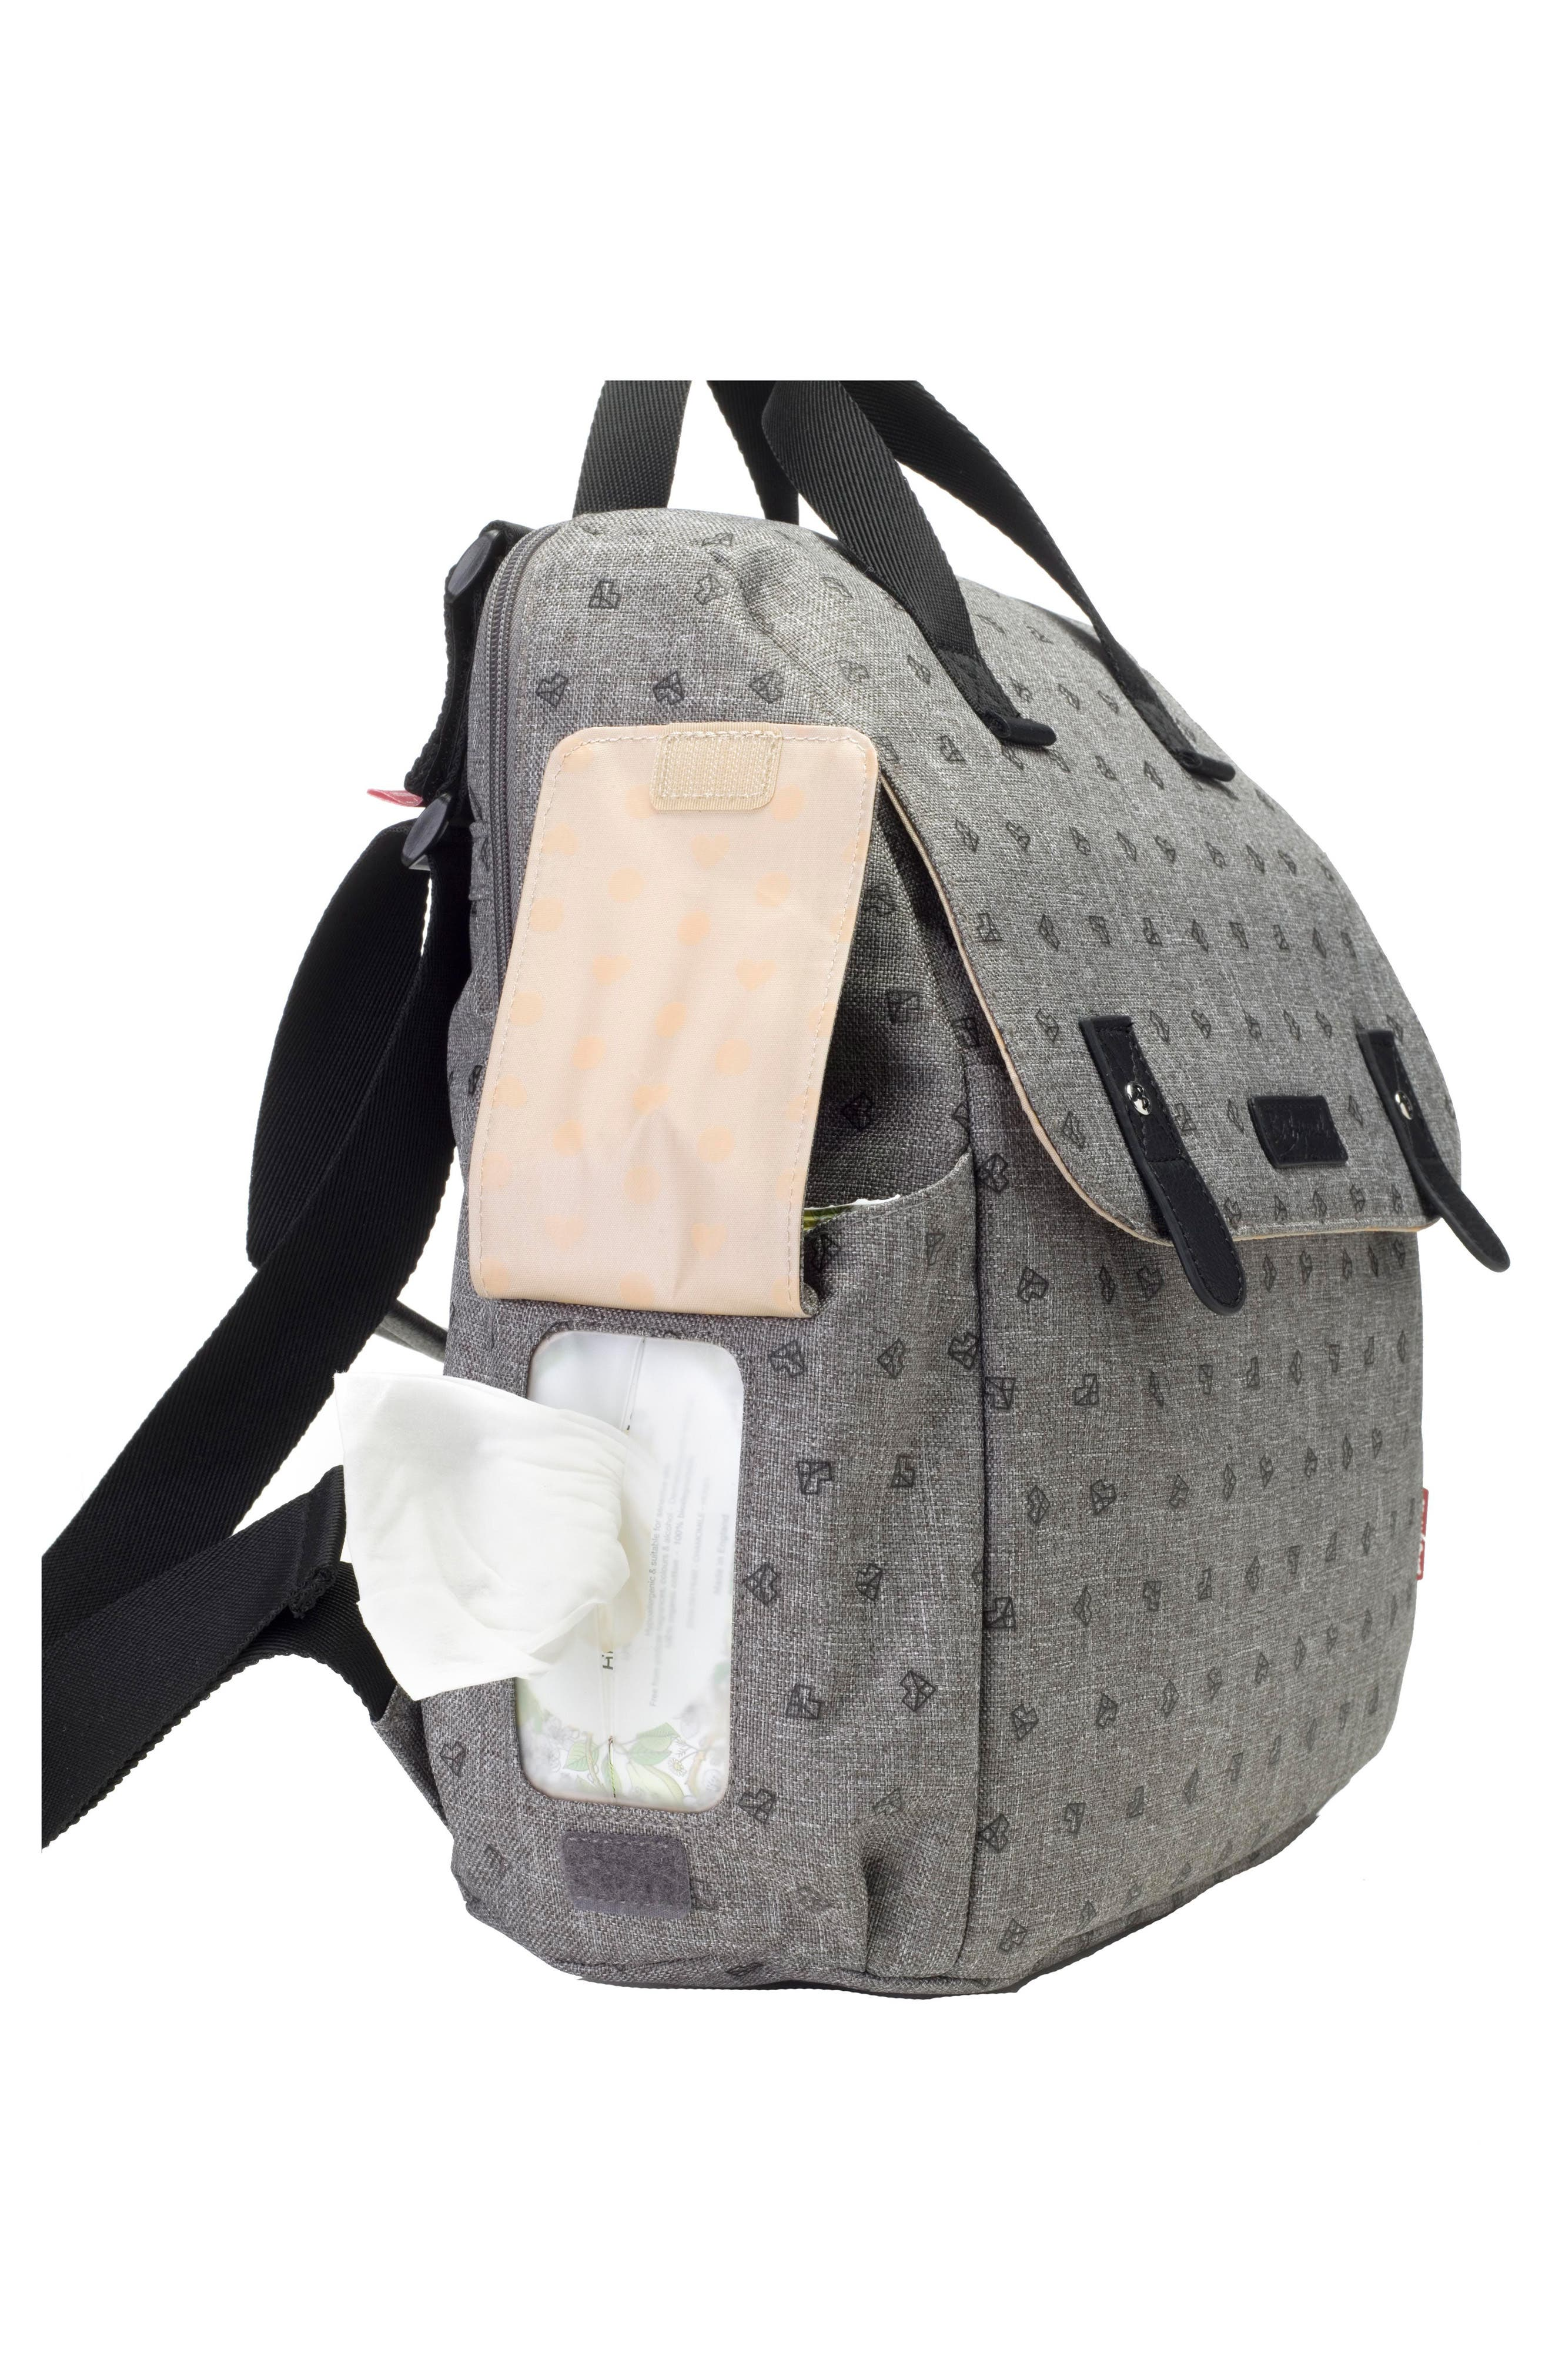 Robyn Convertible Diaper Backpack,                             Alternate thumbnail 8, color,                             GREY ORIGAMI HEART